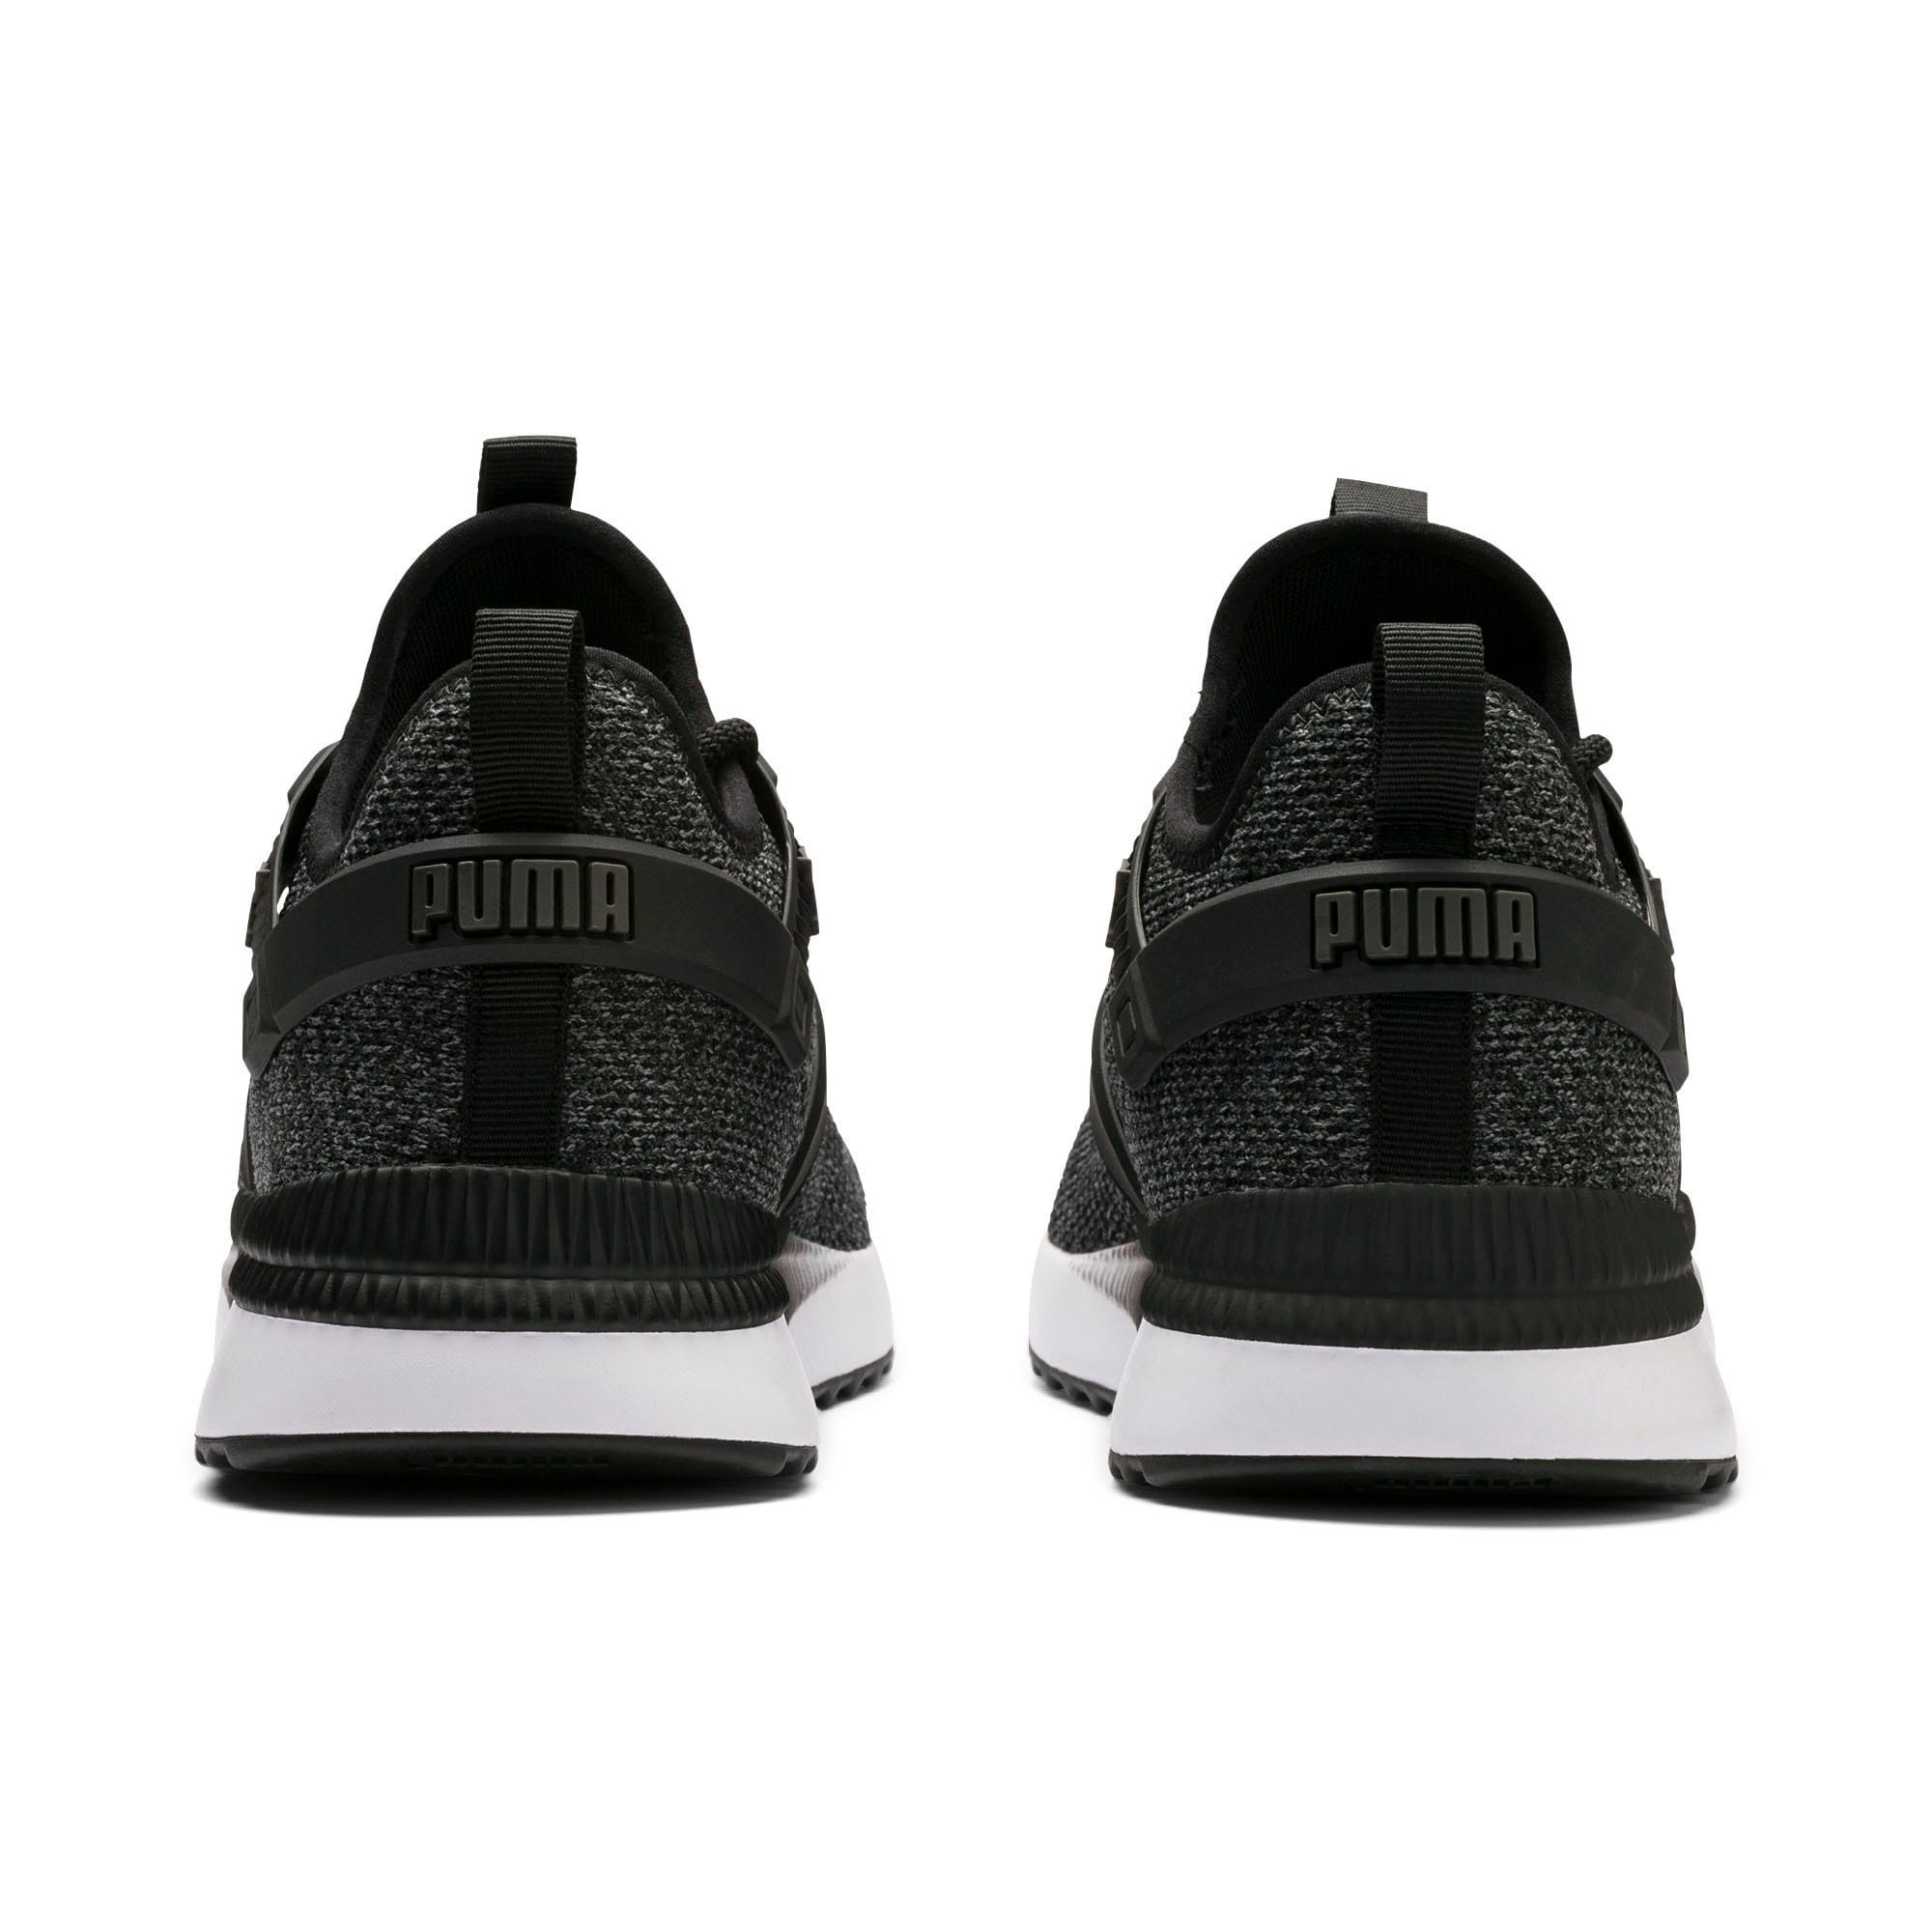 Thumbnail 3 of Pacer Next Excel VariKnit Trainers, Puma Black-Charcoal Gray, medium-IND